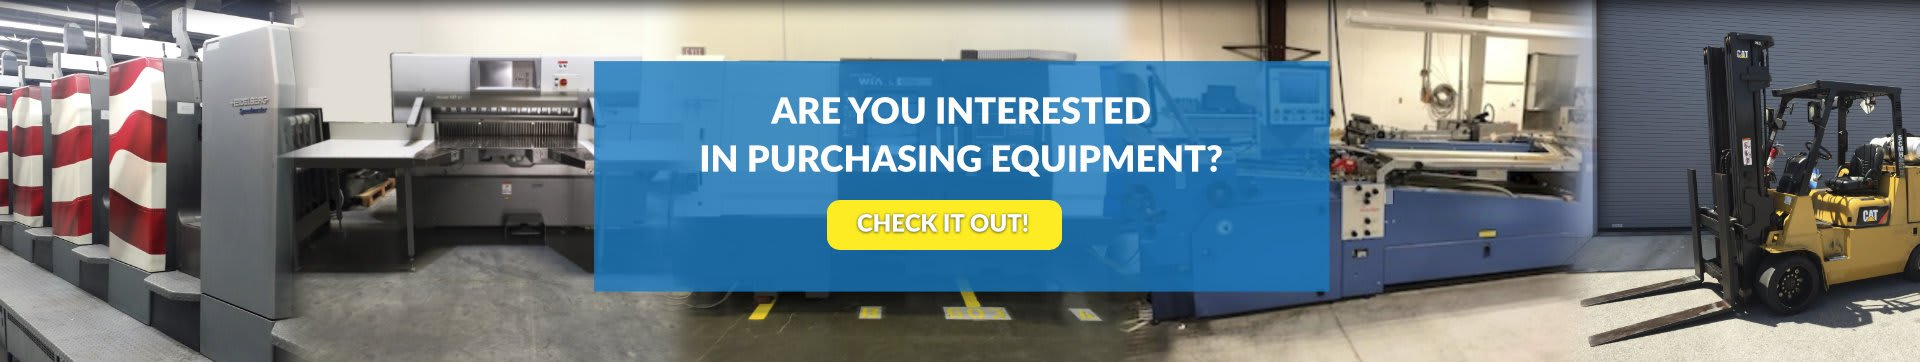 are you interested in purchasing equipment?